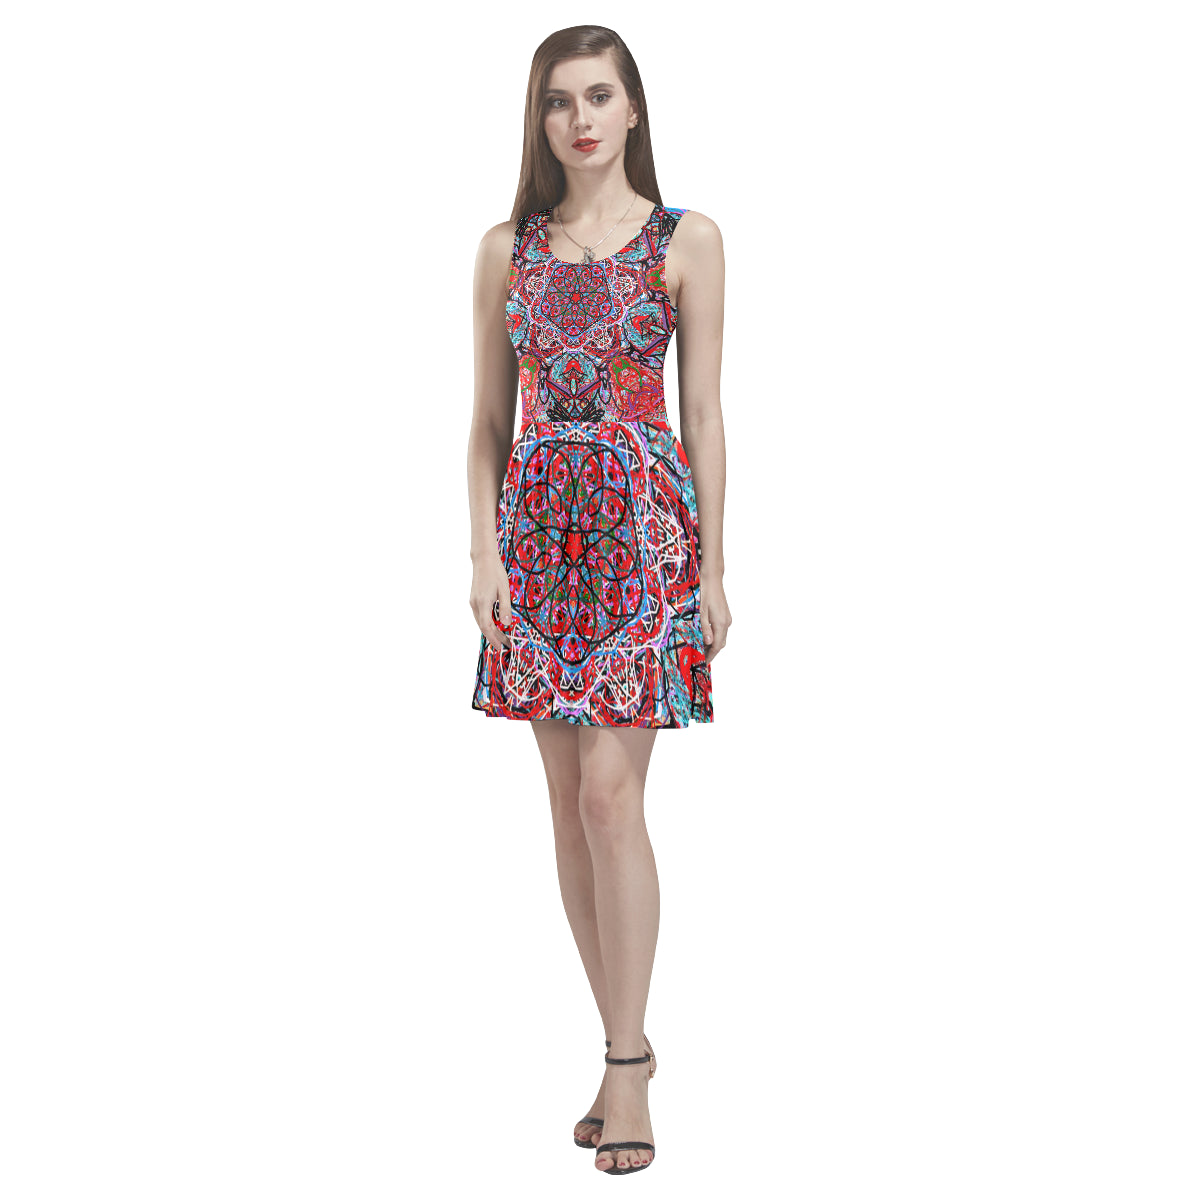 Thleudron Women's The Ring Thea Sleeveless Skater Dress(Model D19) - Thleudron